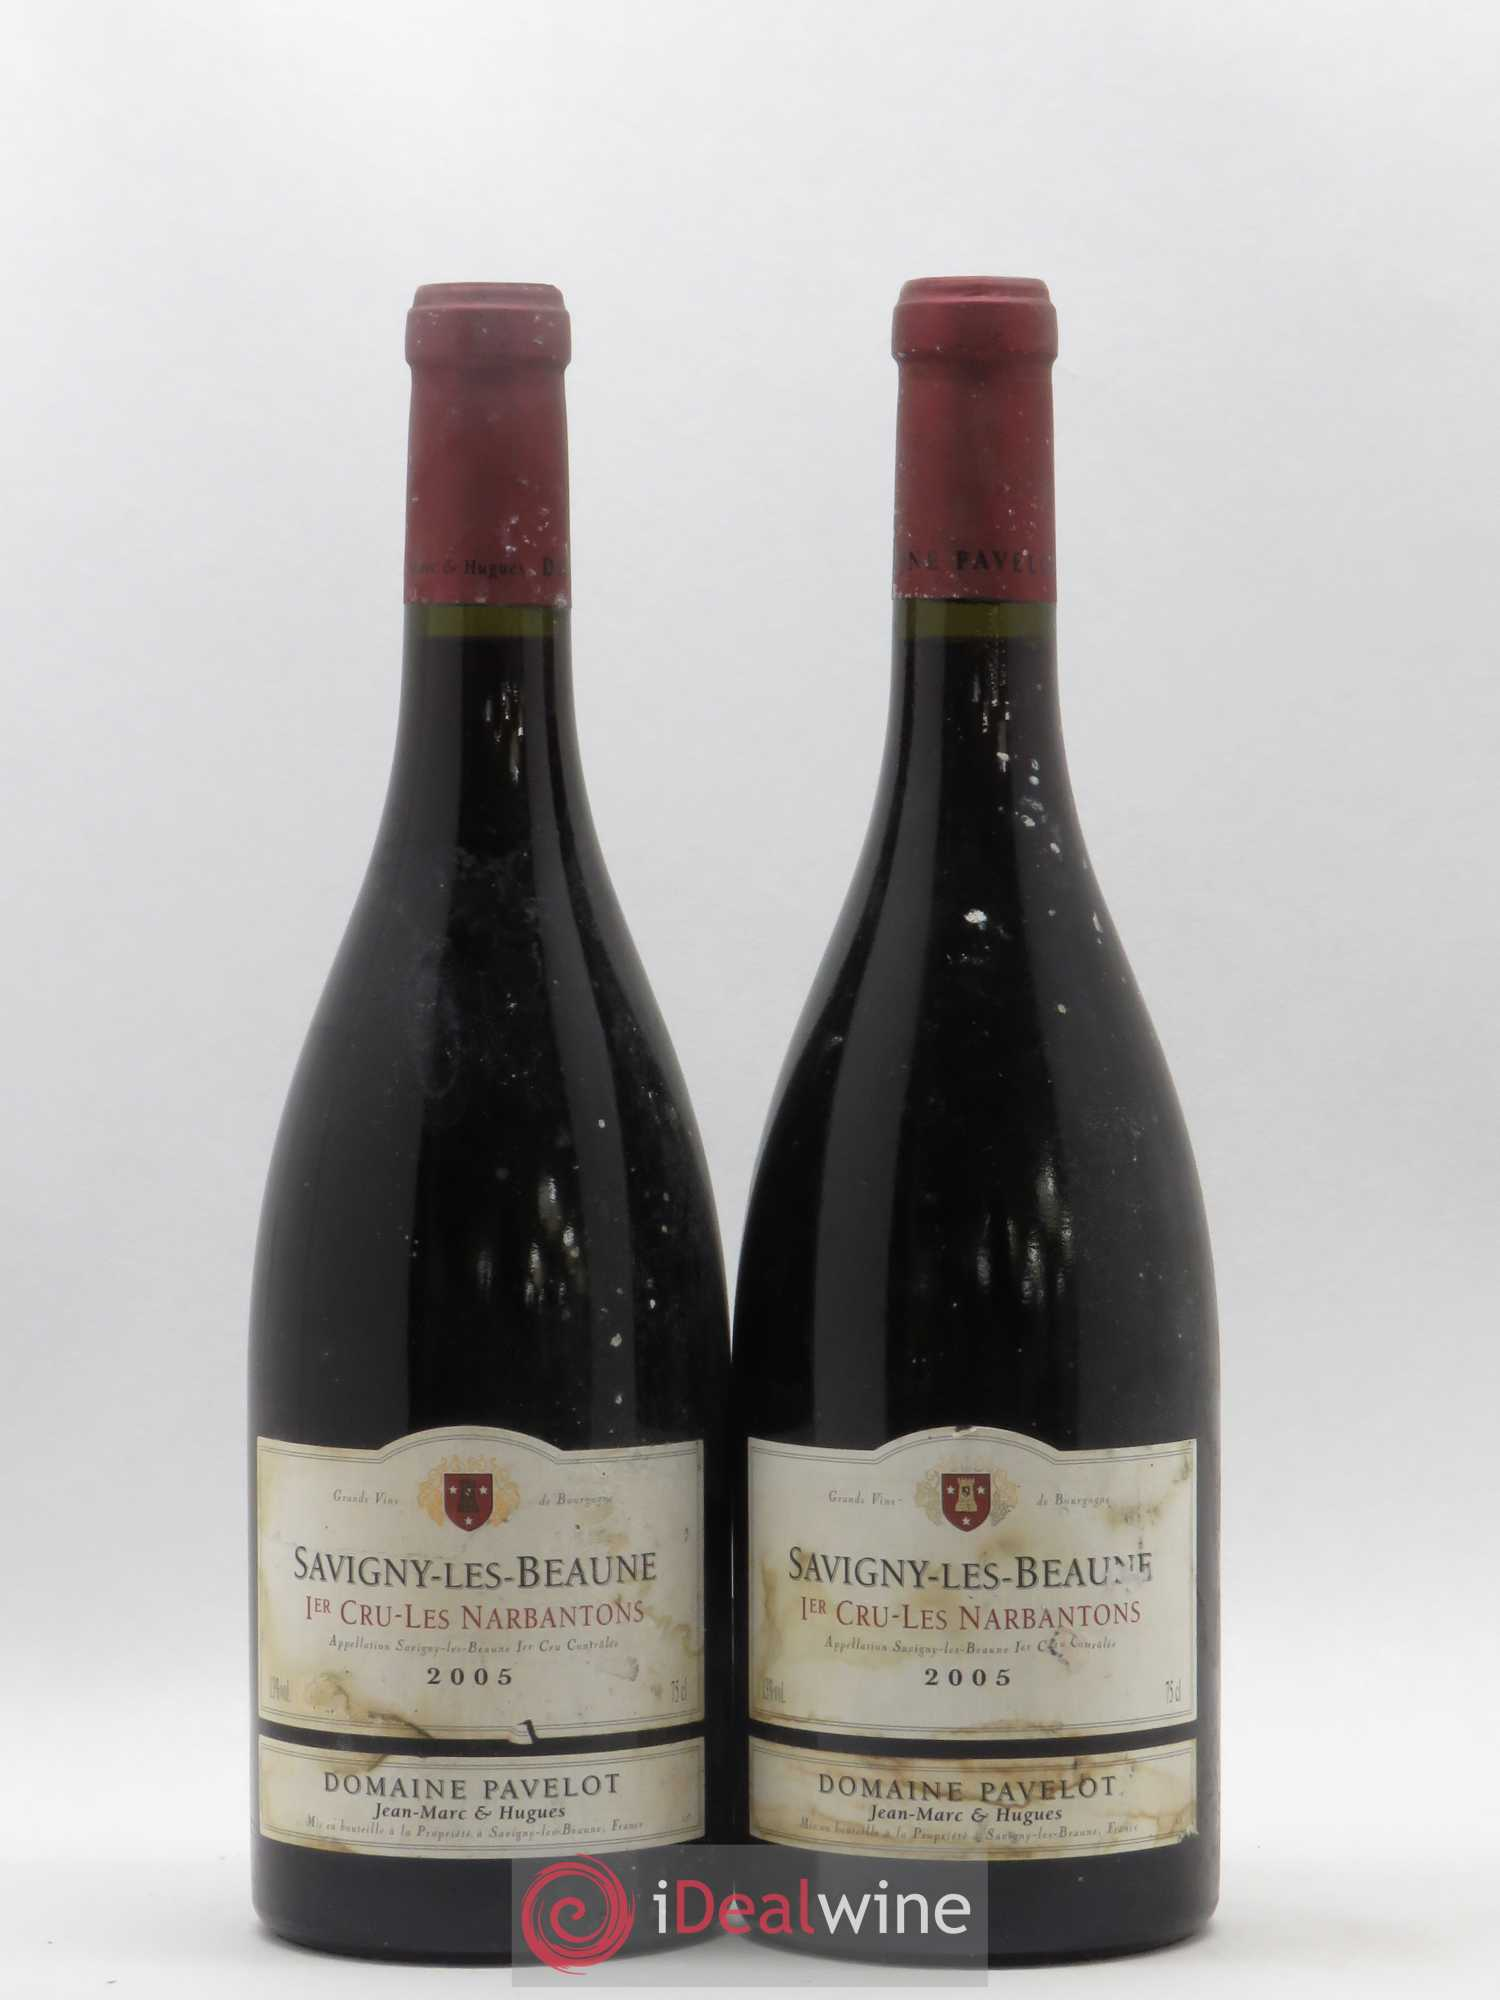 Savigny-lès-Beaune 1er Cru Les Narbantons Domaine Pavelot (no reserve) 2005 - Lot of 2 Bottles